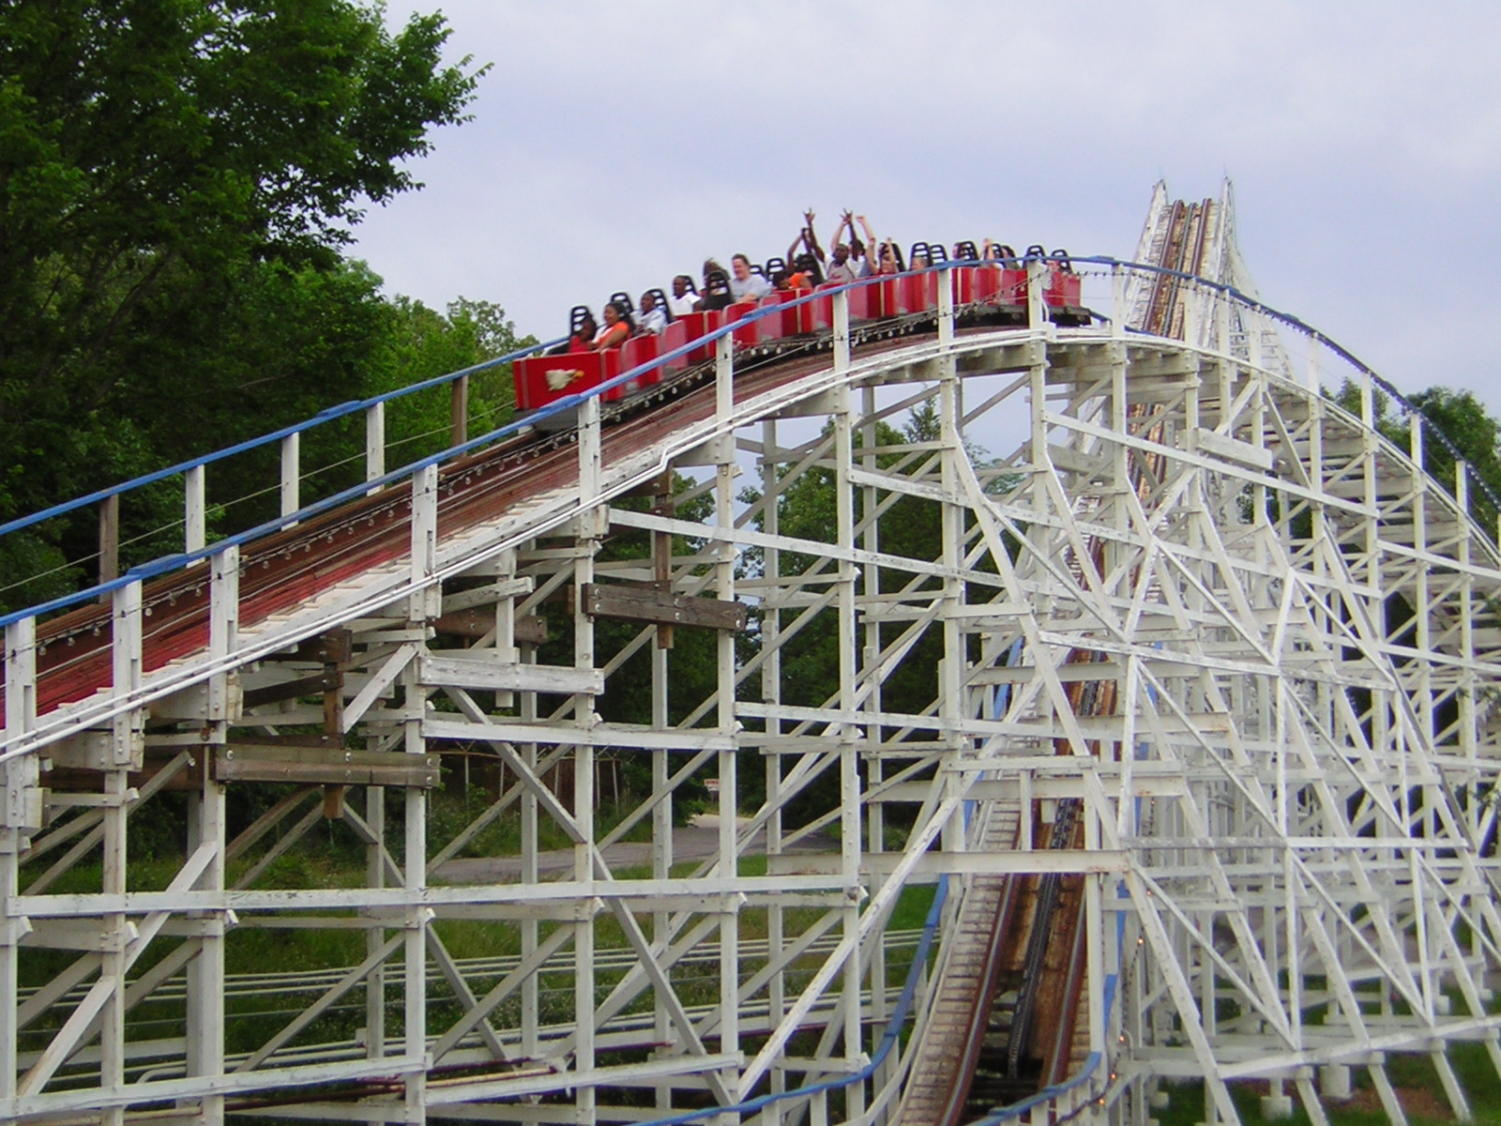 The Screaming Eagle is one roller coaster at Six Flags St. Louis. Six Flags is located in Eureka and is open from 10:30 a.m.-6 p.m., Monday through Friday, 10:30 a.m.-9 p.m. on Saturday and 10:30 a.m.-7 p.m. on Sunday.